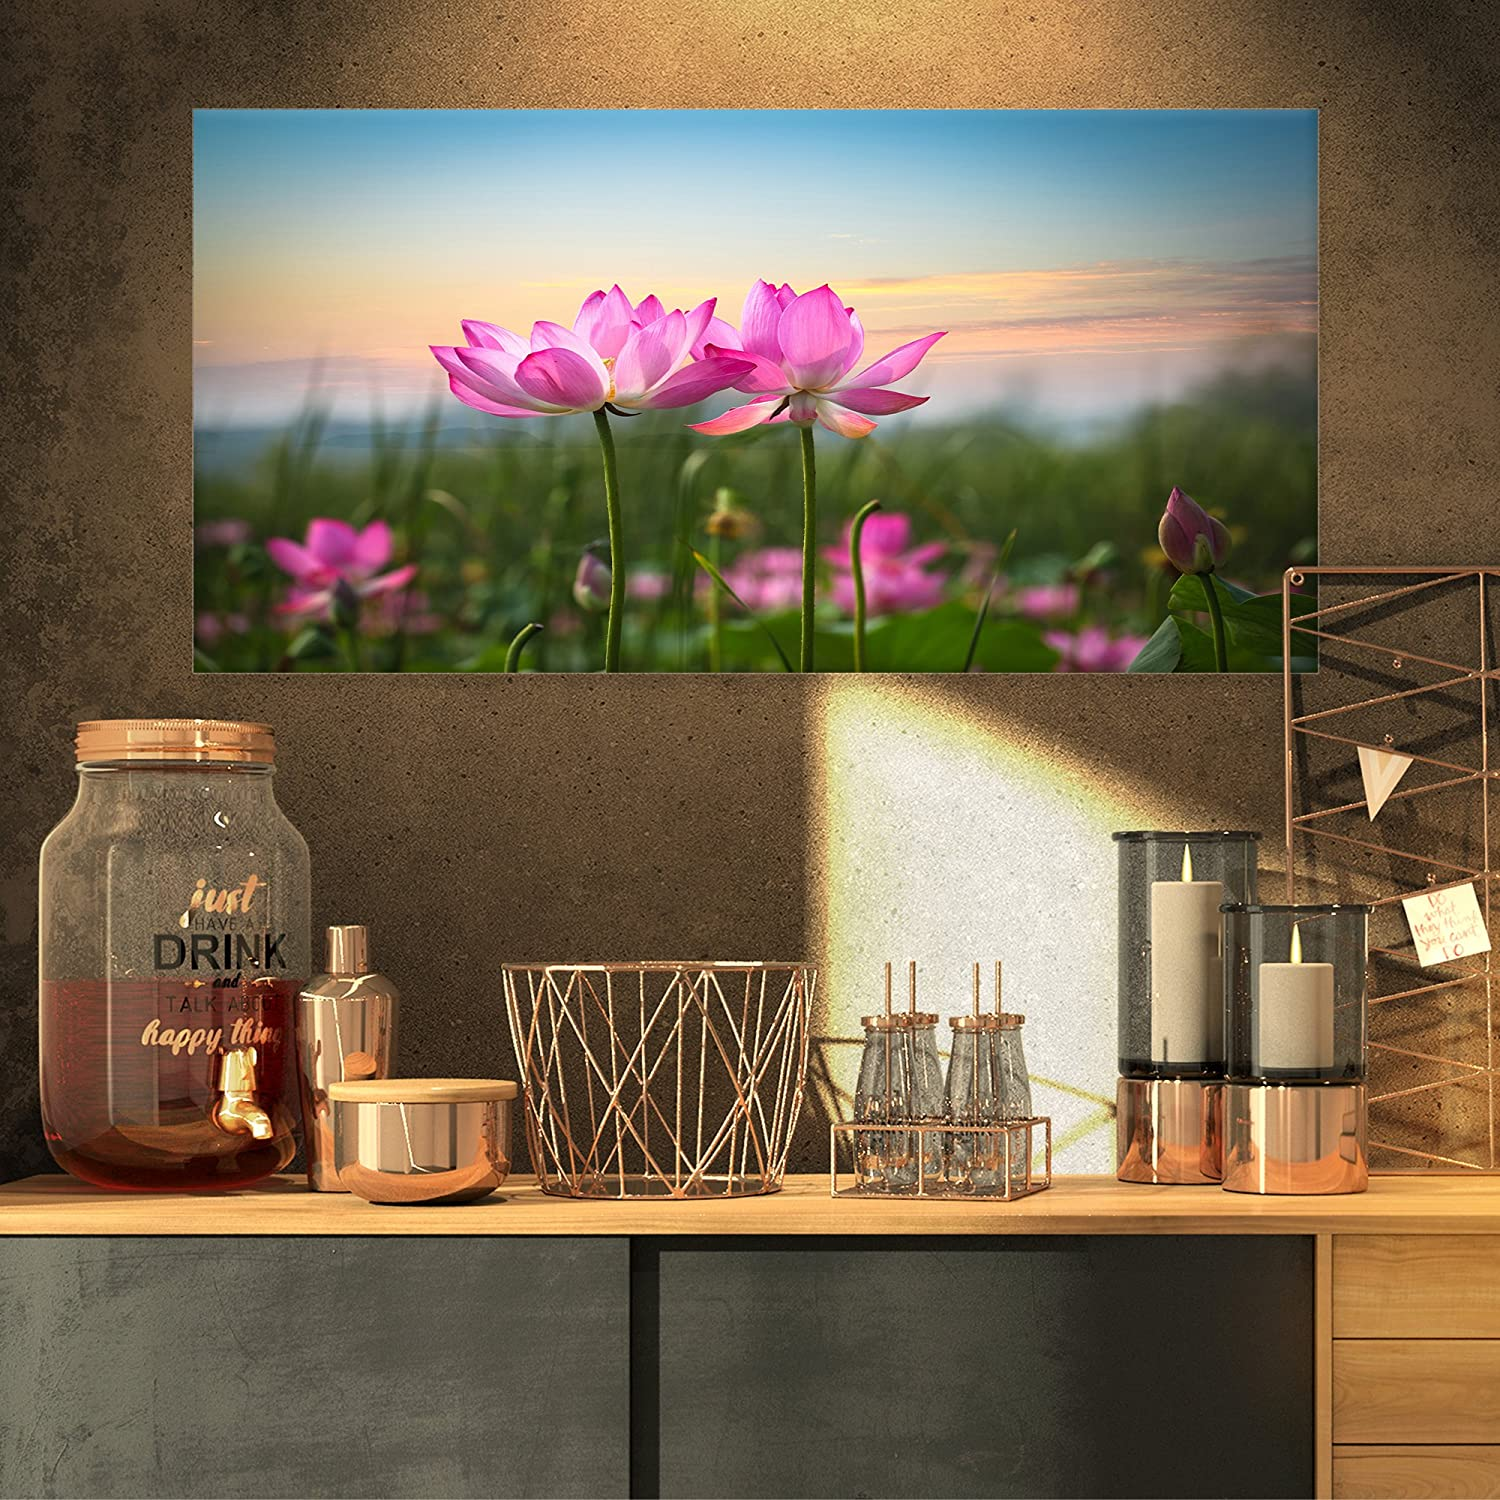 Design Art PT9674-32-16 Blooming Lotus Flowers at Sunset Floral Photo Canvas Print, 32x16, Pink